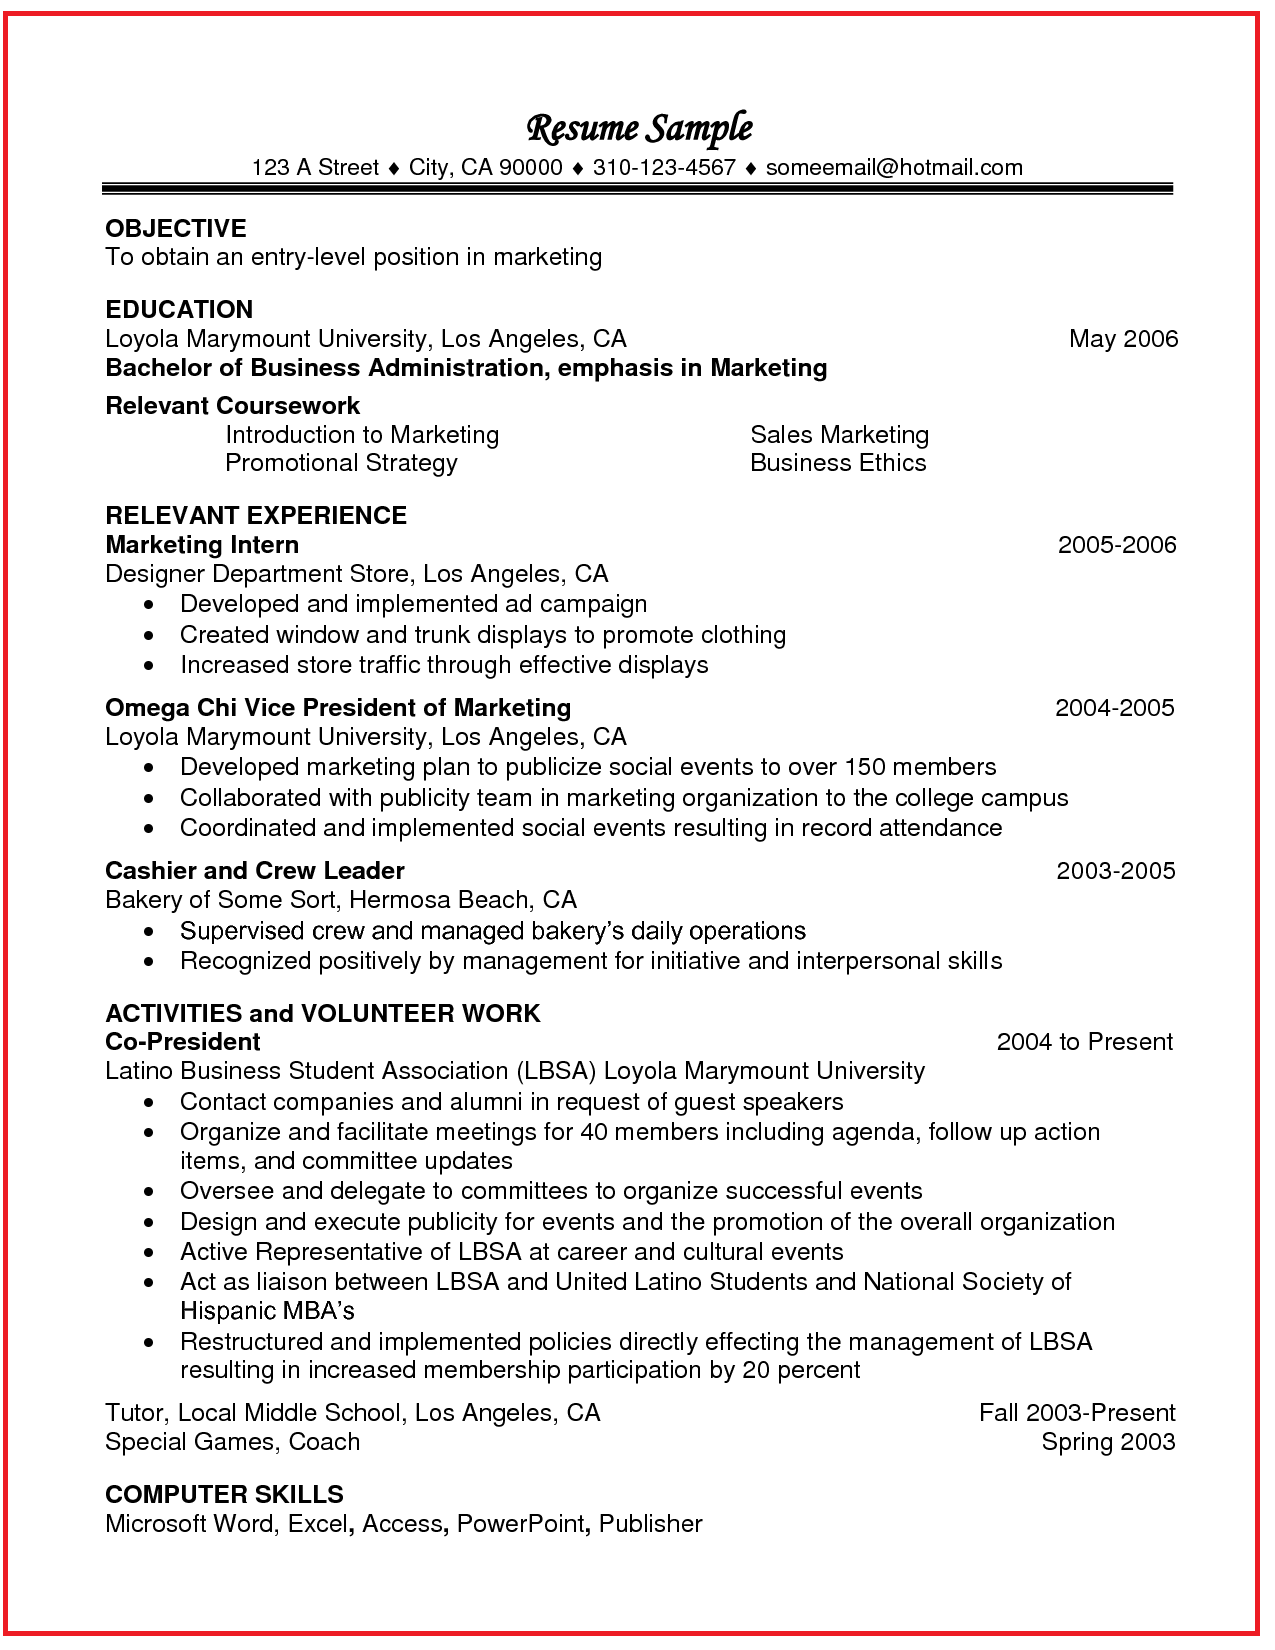 Relevant Coursework In Resume Example - http://www.jobresume ...